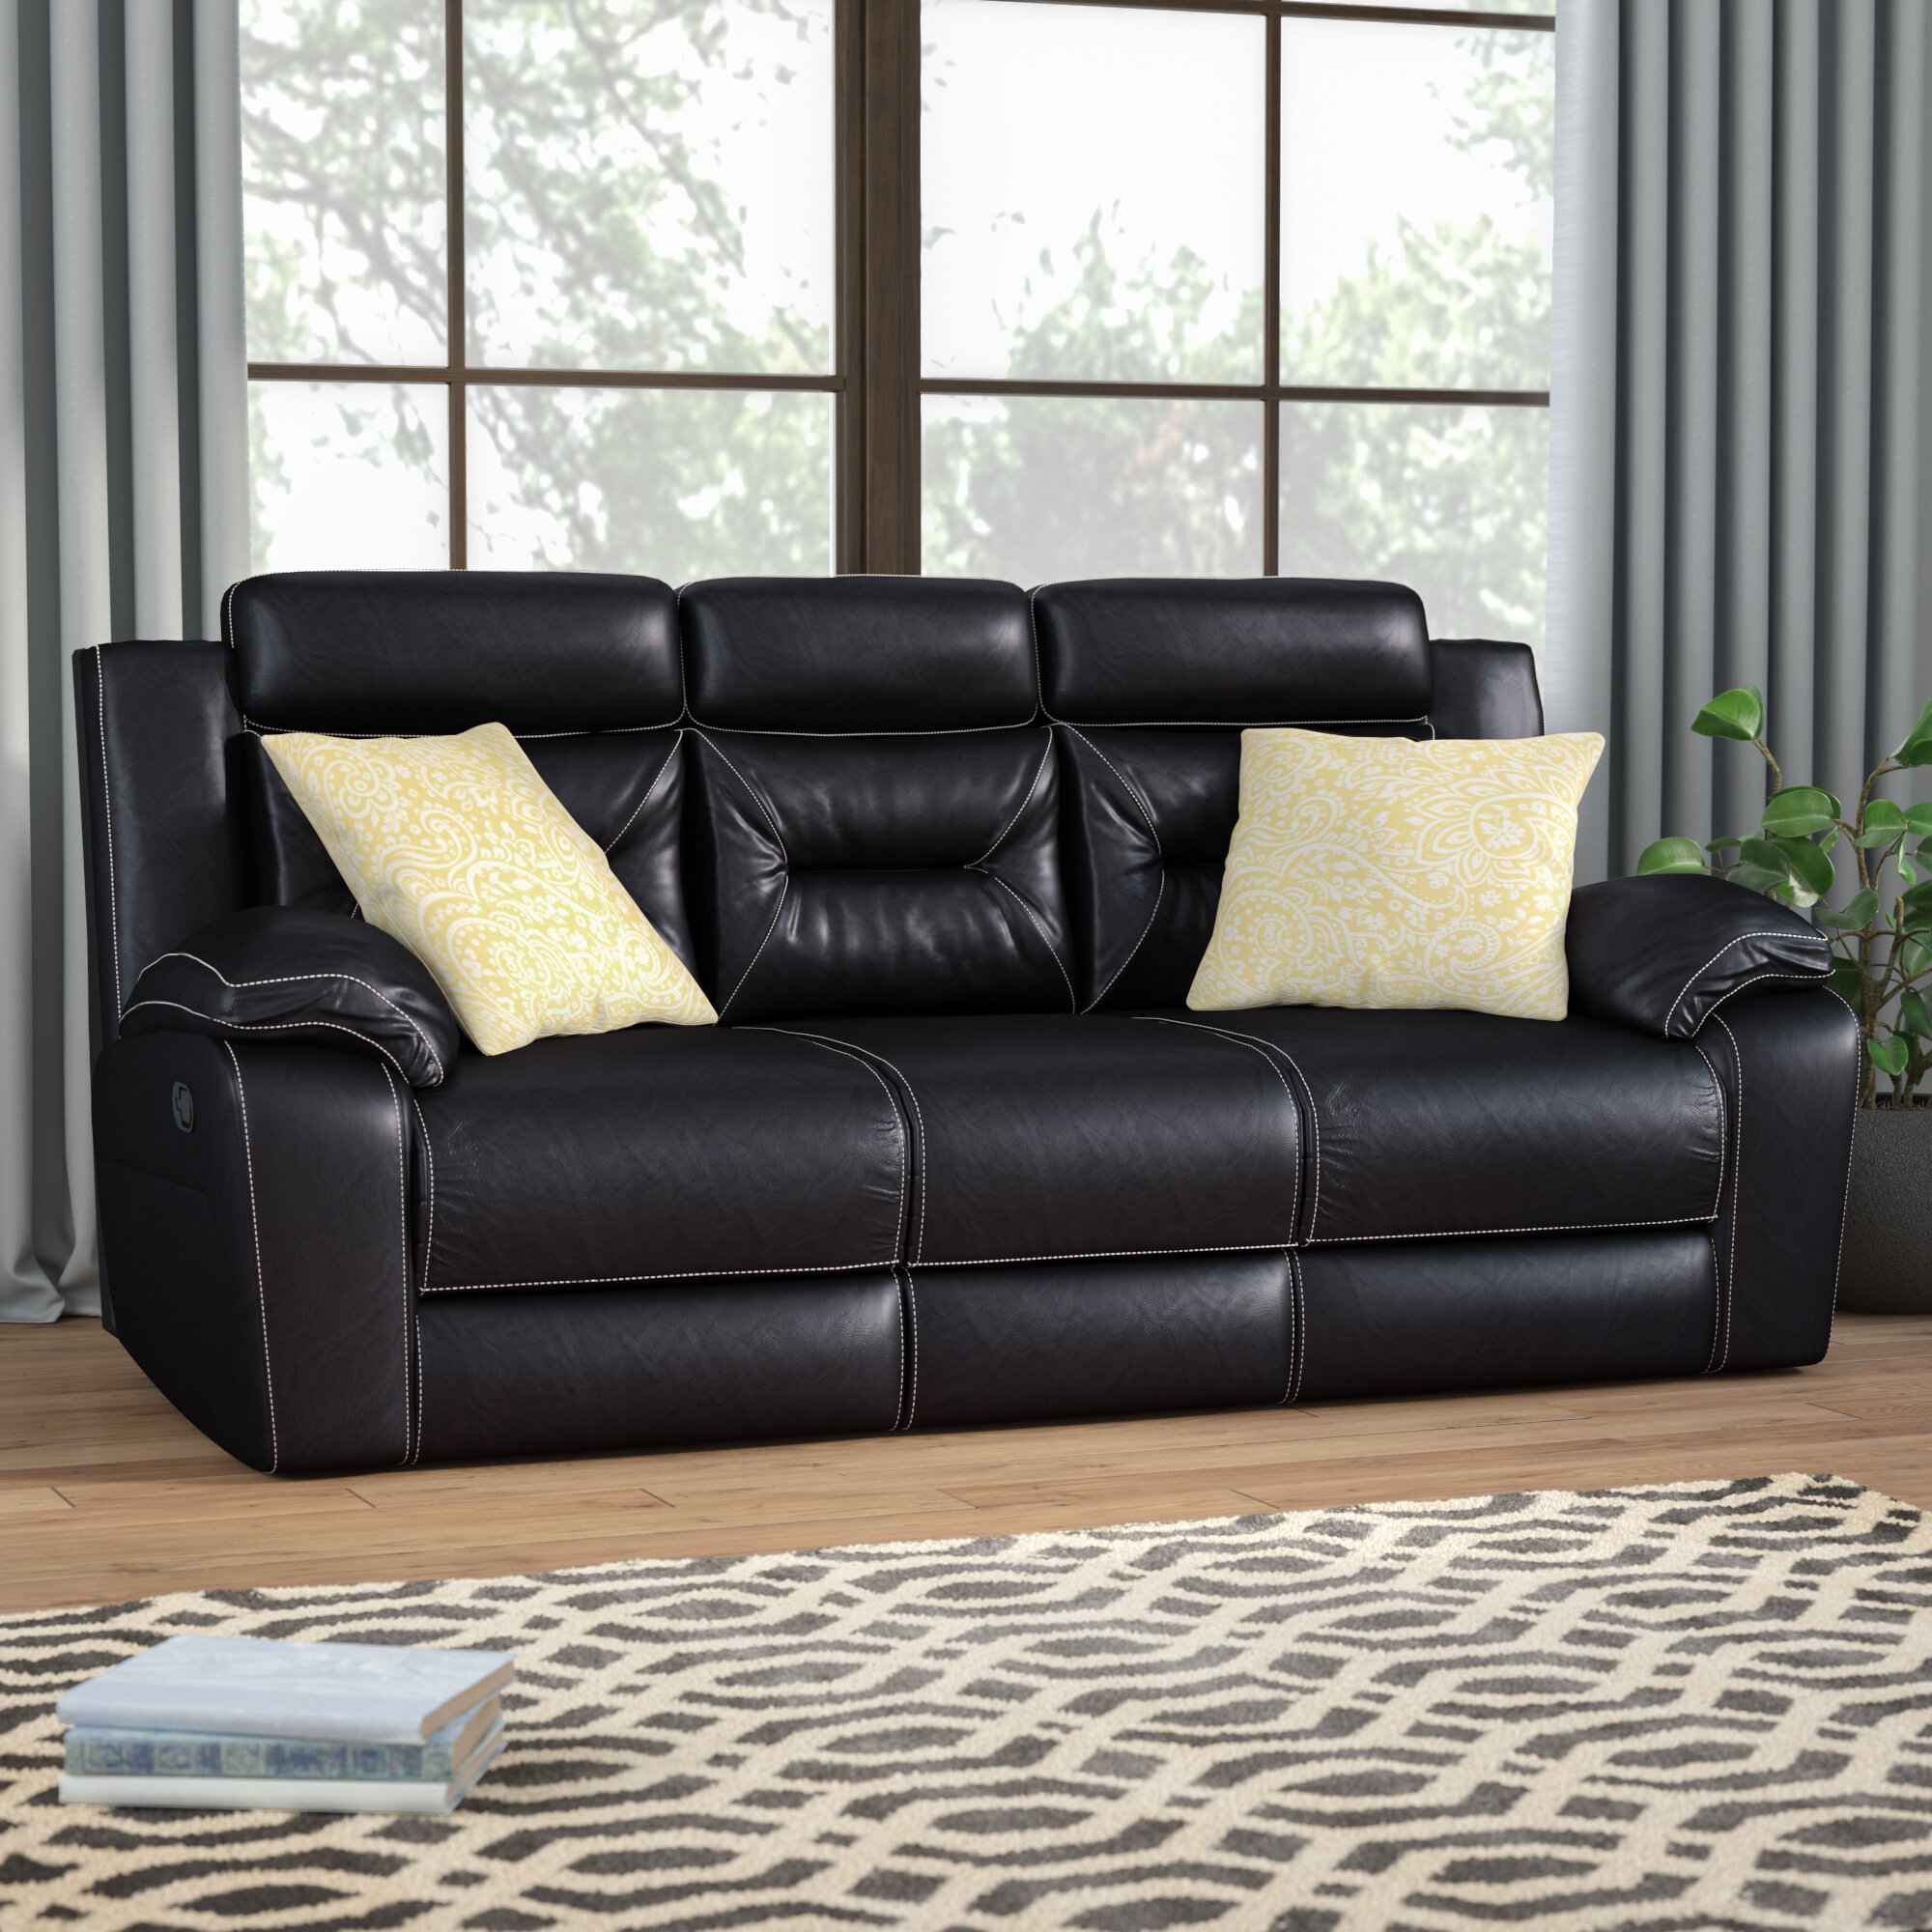 Andover Mills Simmons Upholstery Chadbourne Double Motion Reclining